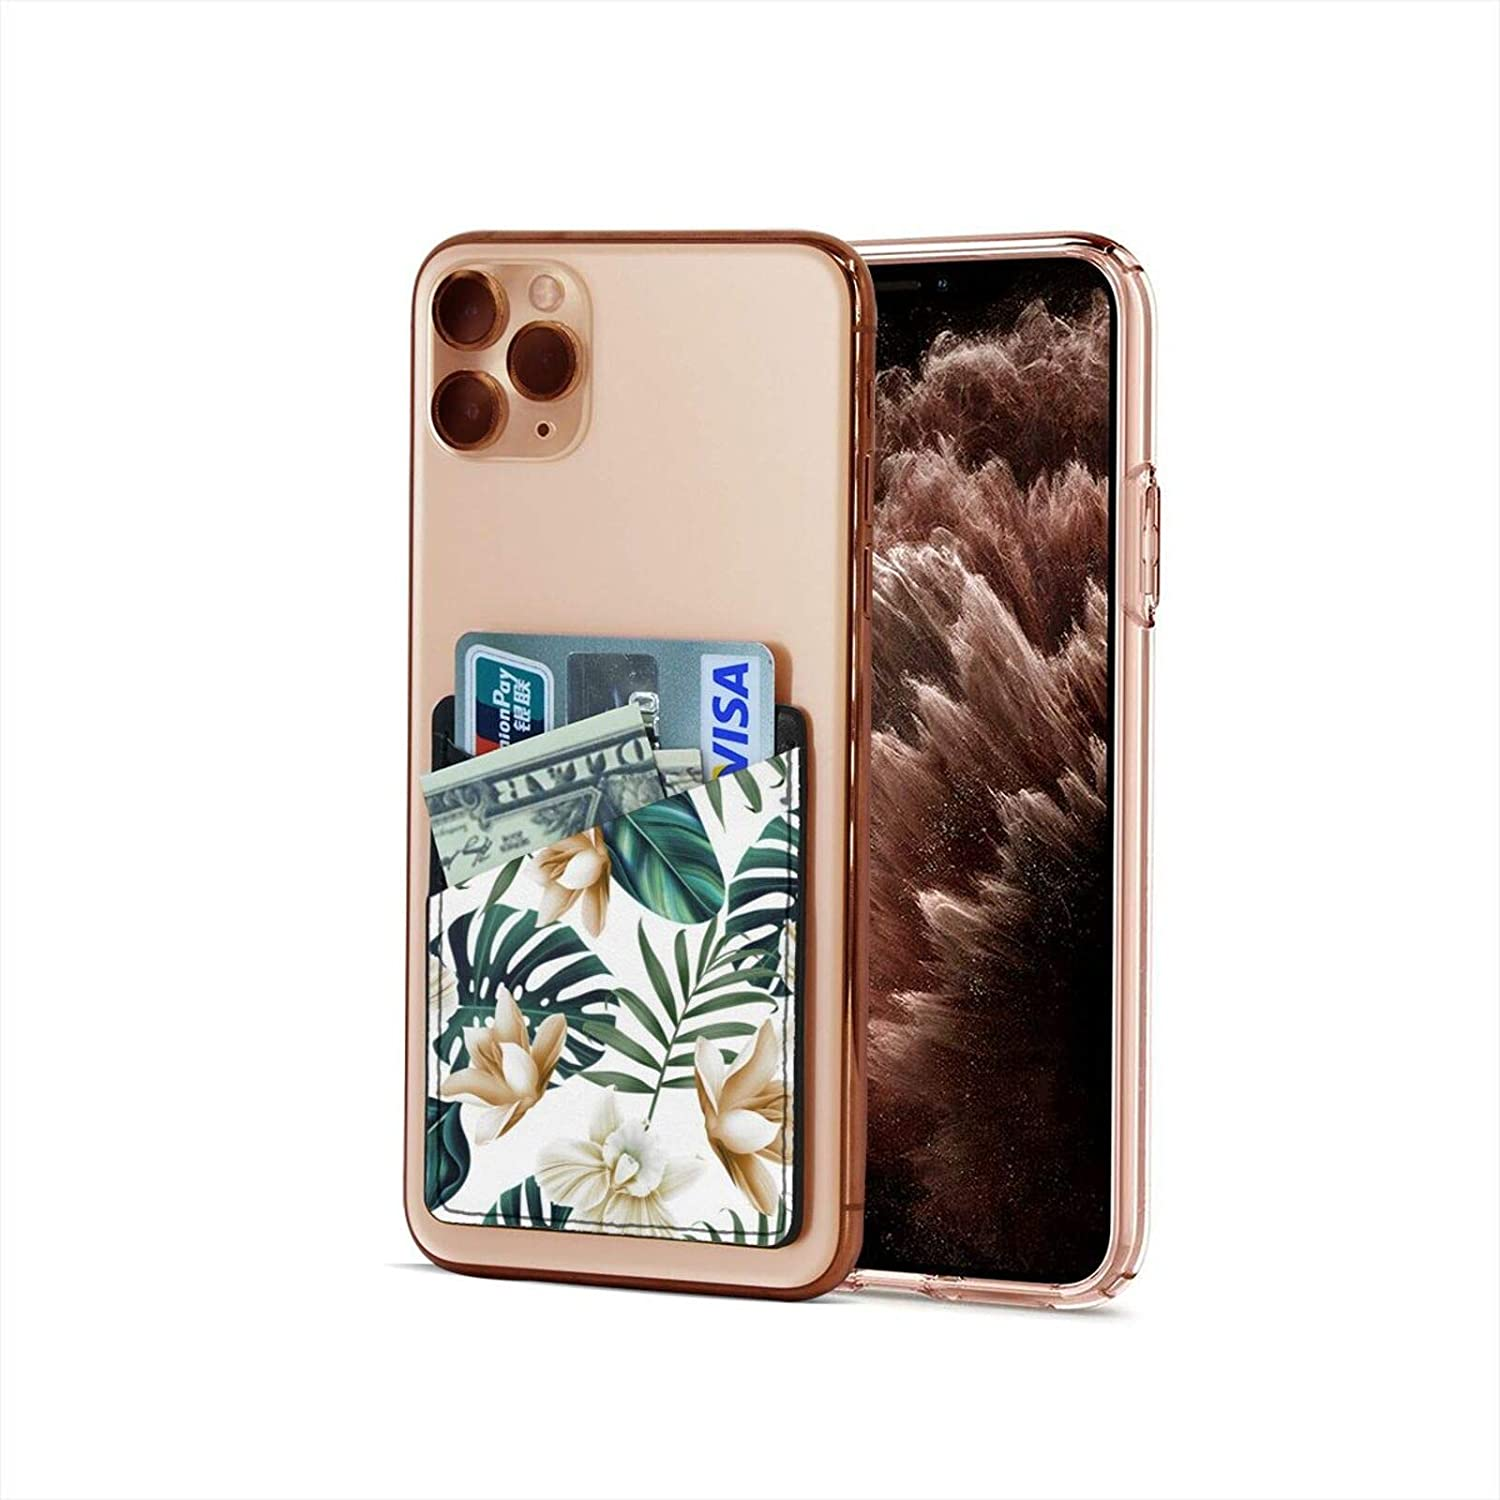 Cell Phone Card Holder, Phone Pocket Stick On Cell Phone Wallet Sleeve for Credit Card, Business Card Id and Keys Palm Banana Leaves